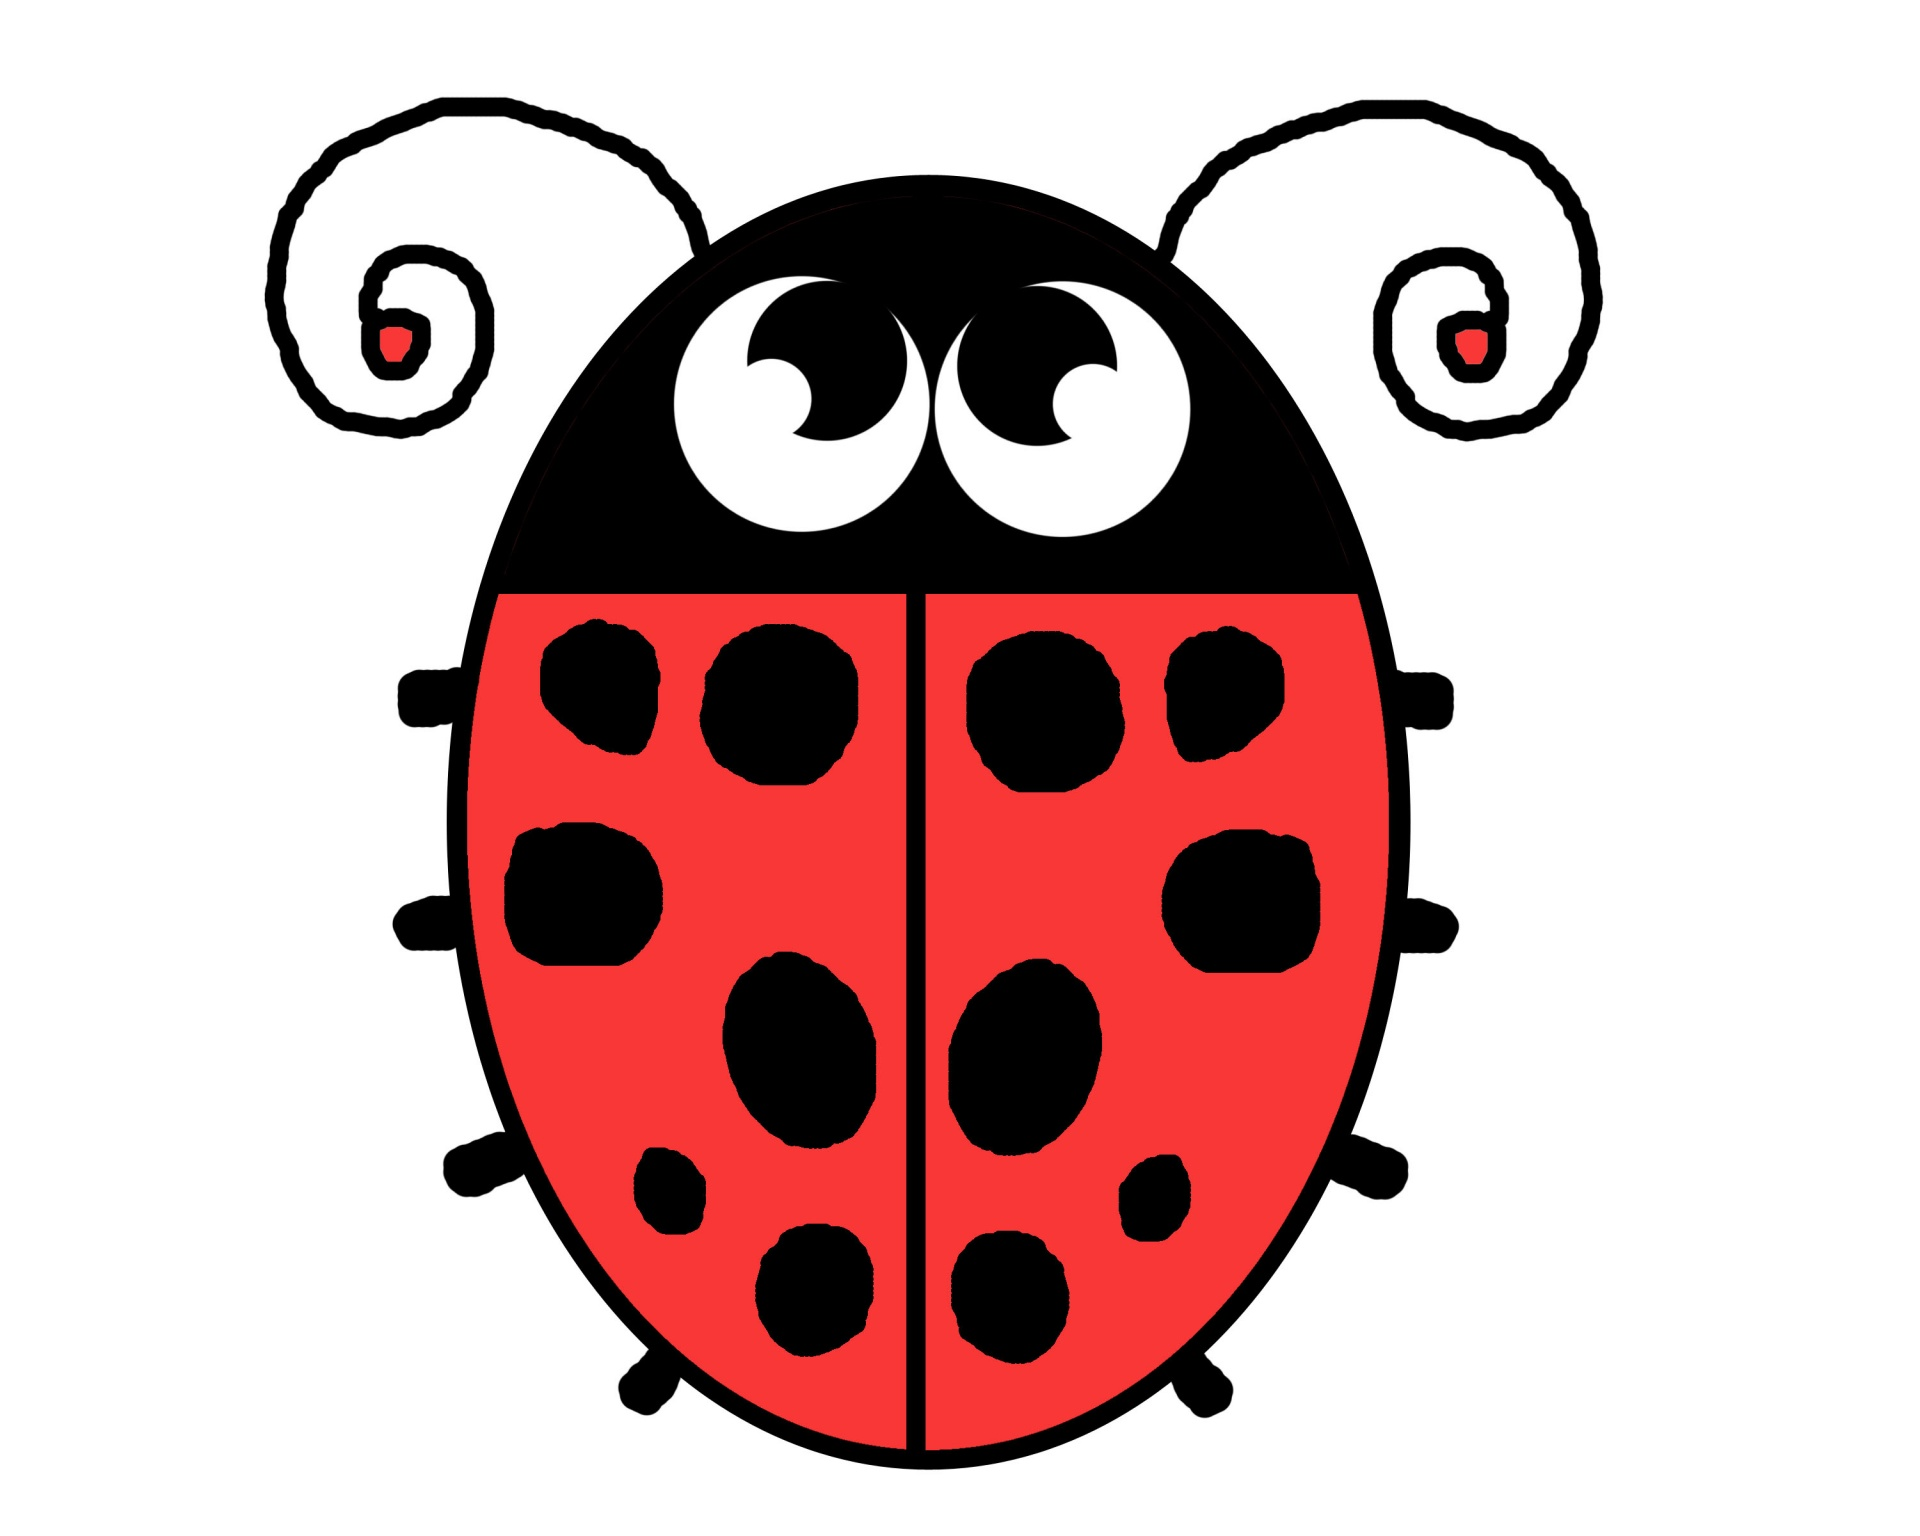 Bug clipart illustration Cliparting com Lady stock photo